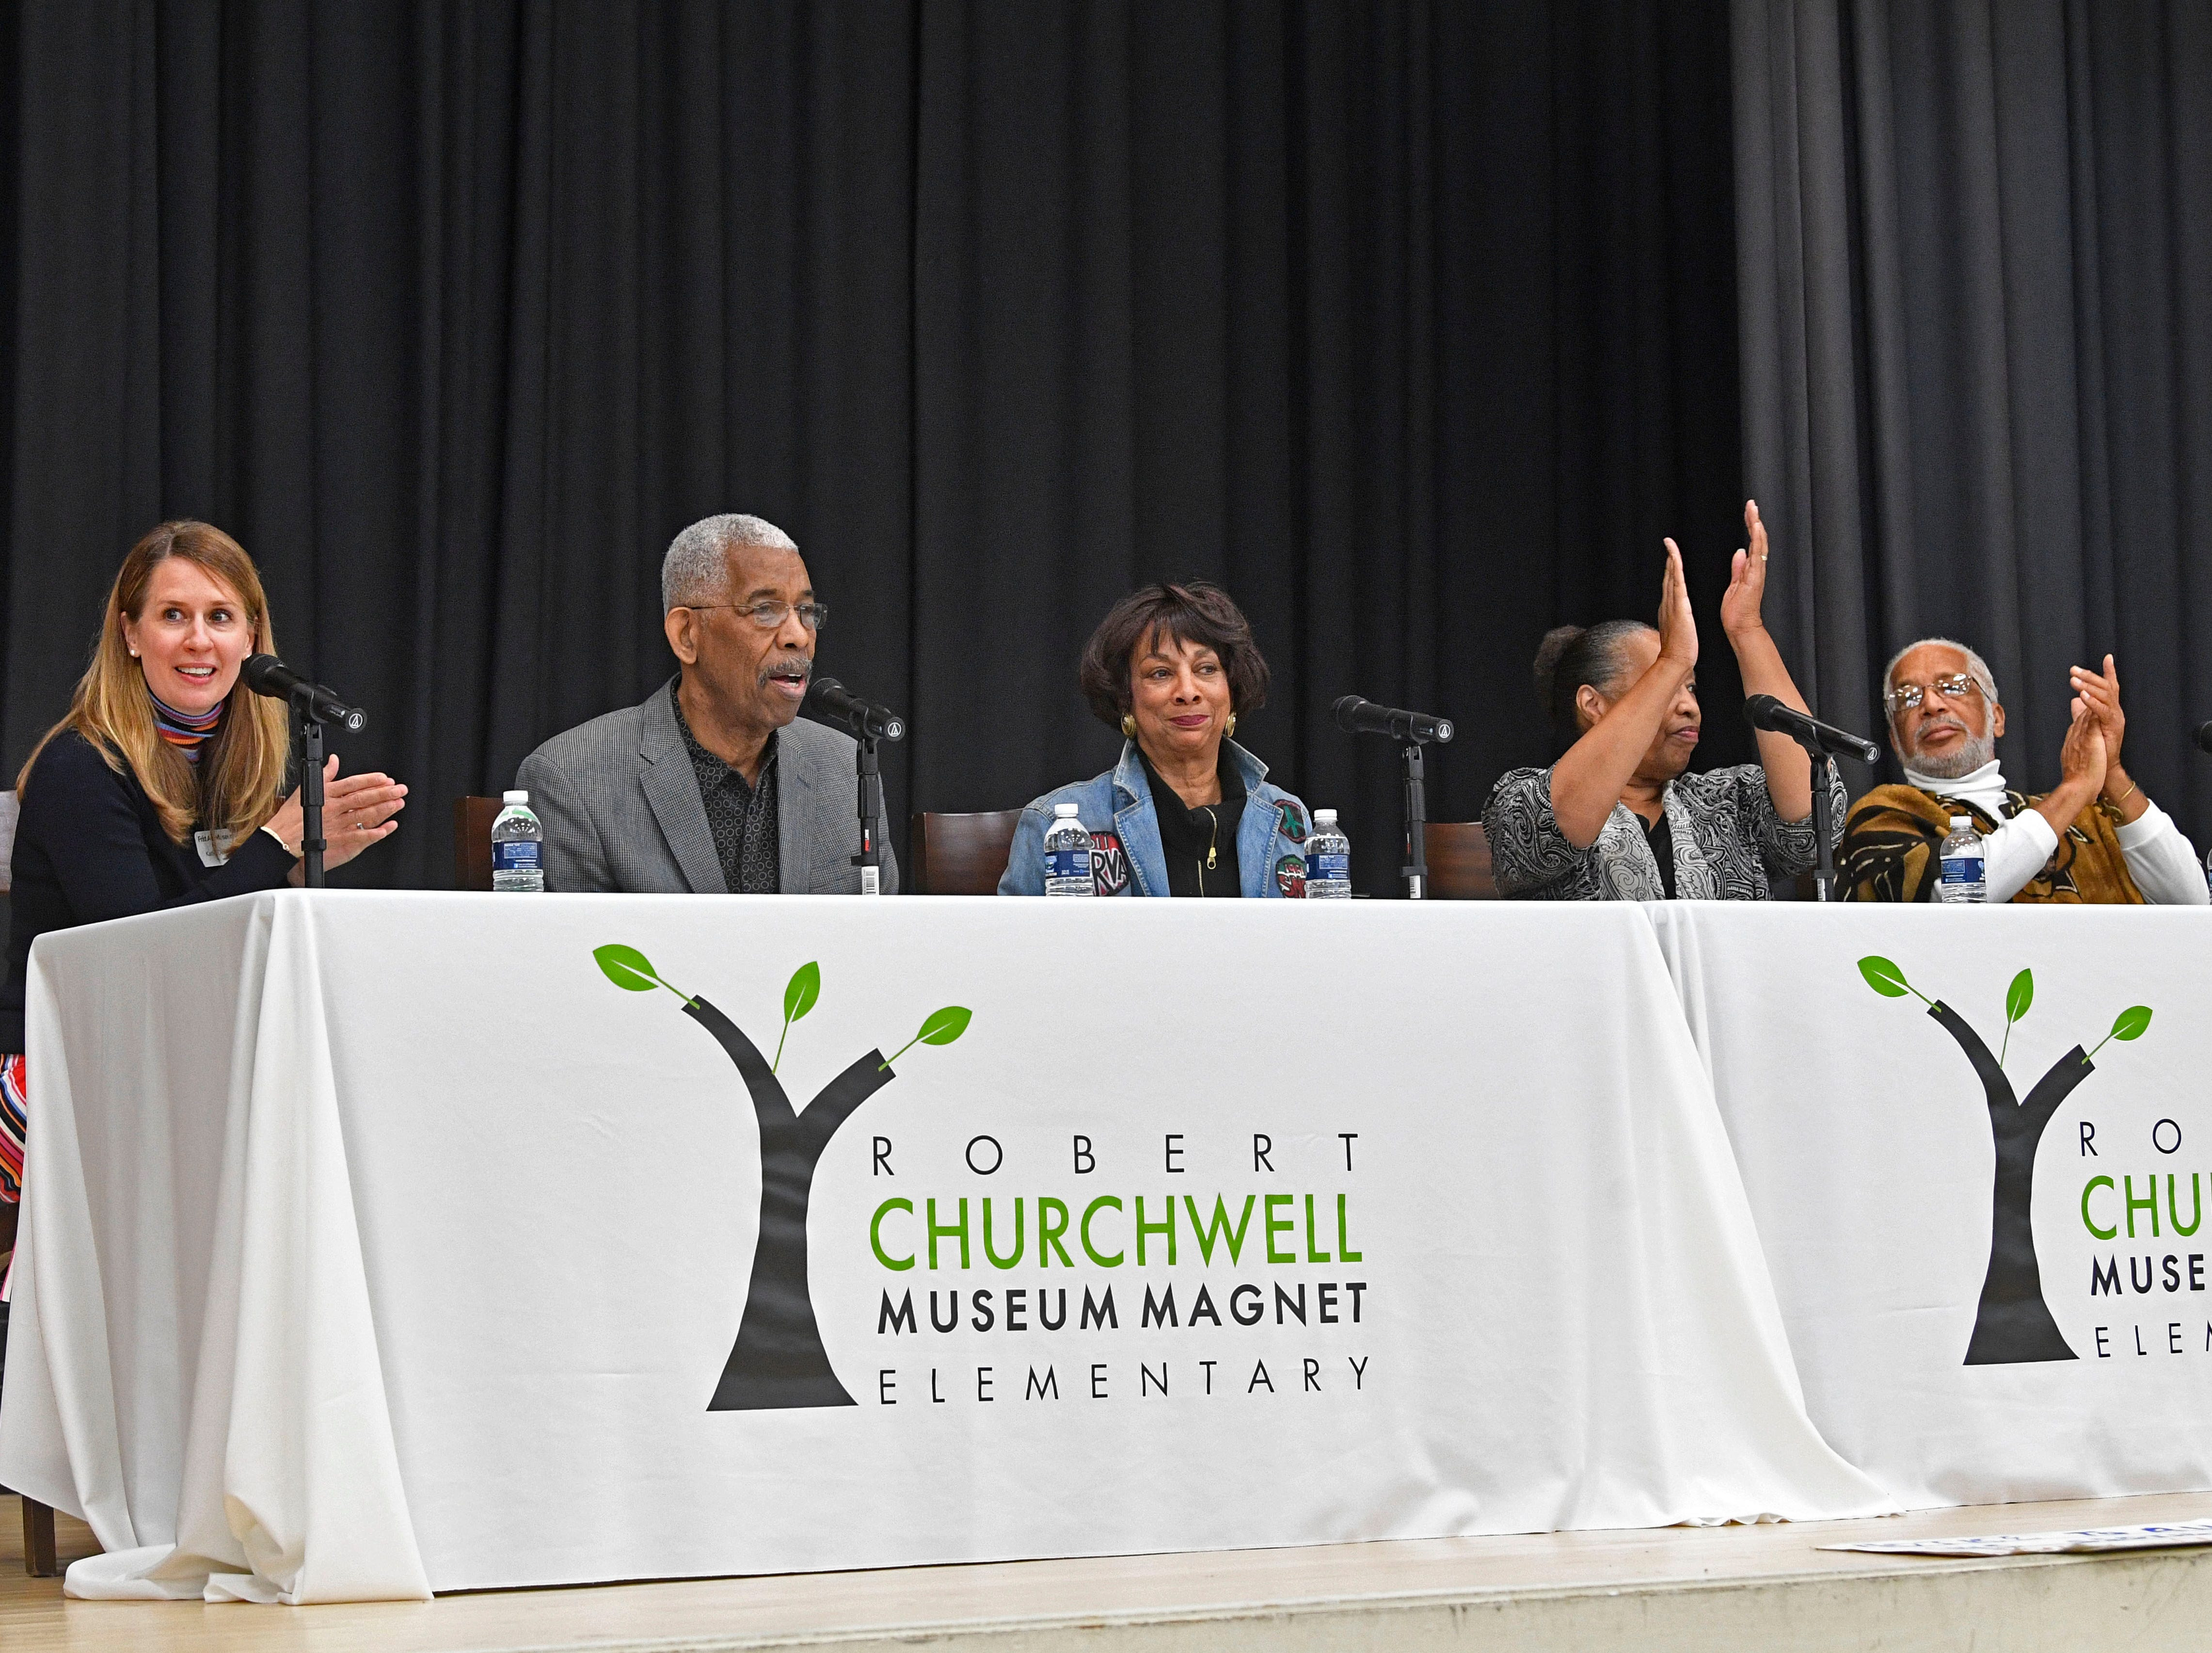 A significant part of We Shall Overcome exhibition will be presented at the Robert Churchwell Museum Magnet School beginning November 30. To celebrate its opening, the school hosted an assembly that featured remarks by the principal and a conversation with several participants, including Lajuanda Street Harley, Kwame Lillard, Rip Patton, and Gloria McKissack. Friday Nov. 30, 2018, in Nashville, Tenn.